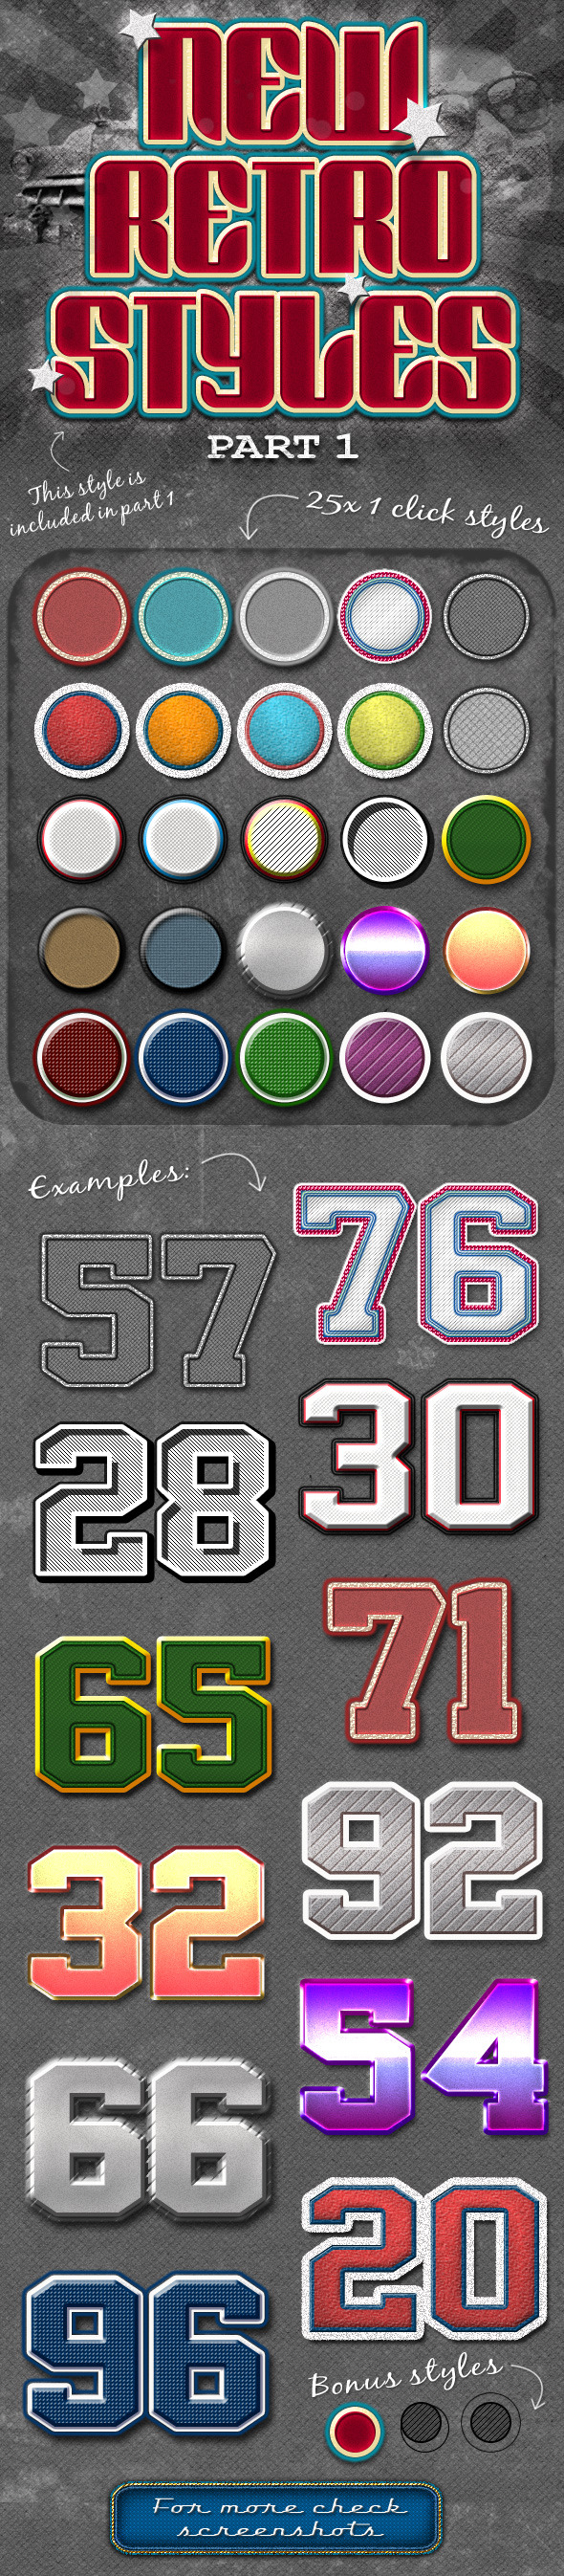 New Retro Styles Part 1 - Text Effects Styles